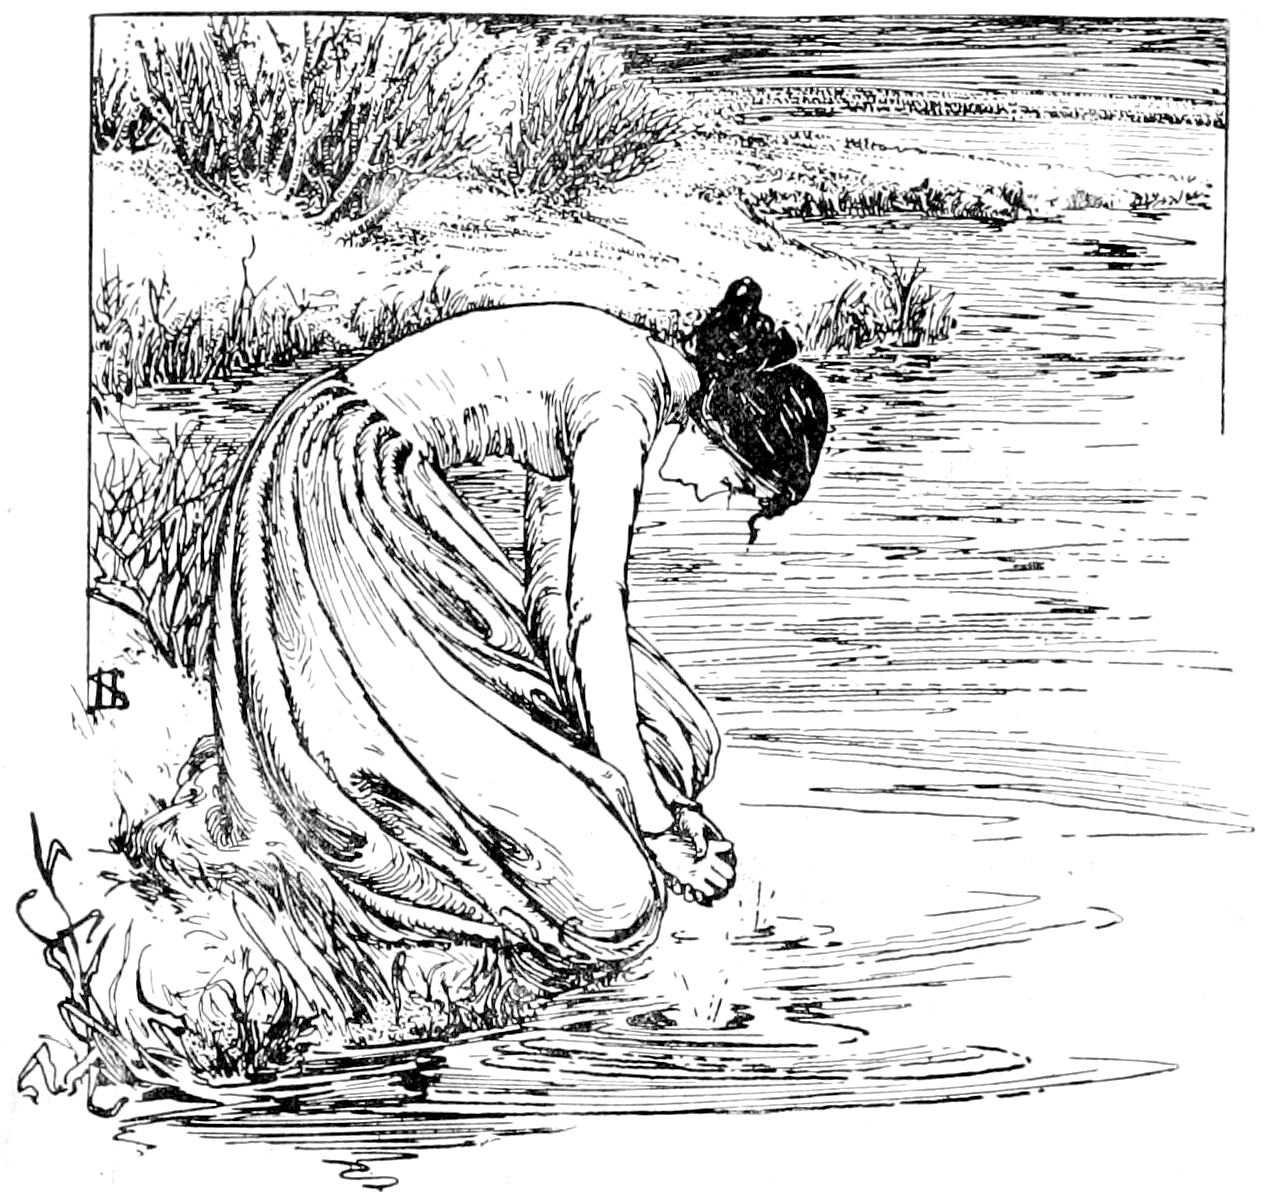 http://upload.wikimedia.org/wikipedia/commons/9/98/Page_222_illustration_in_fairy_tales_of_Andersen_%28Stratton%29.png